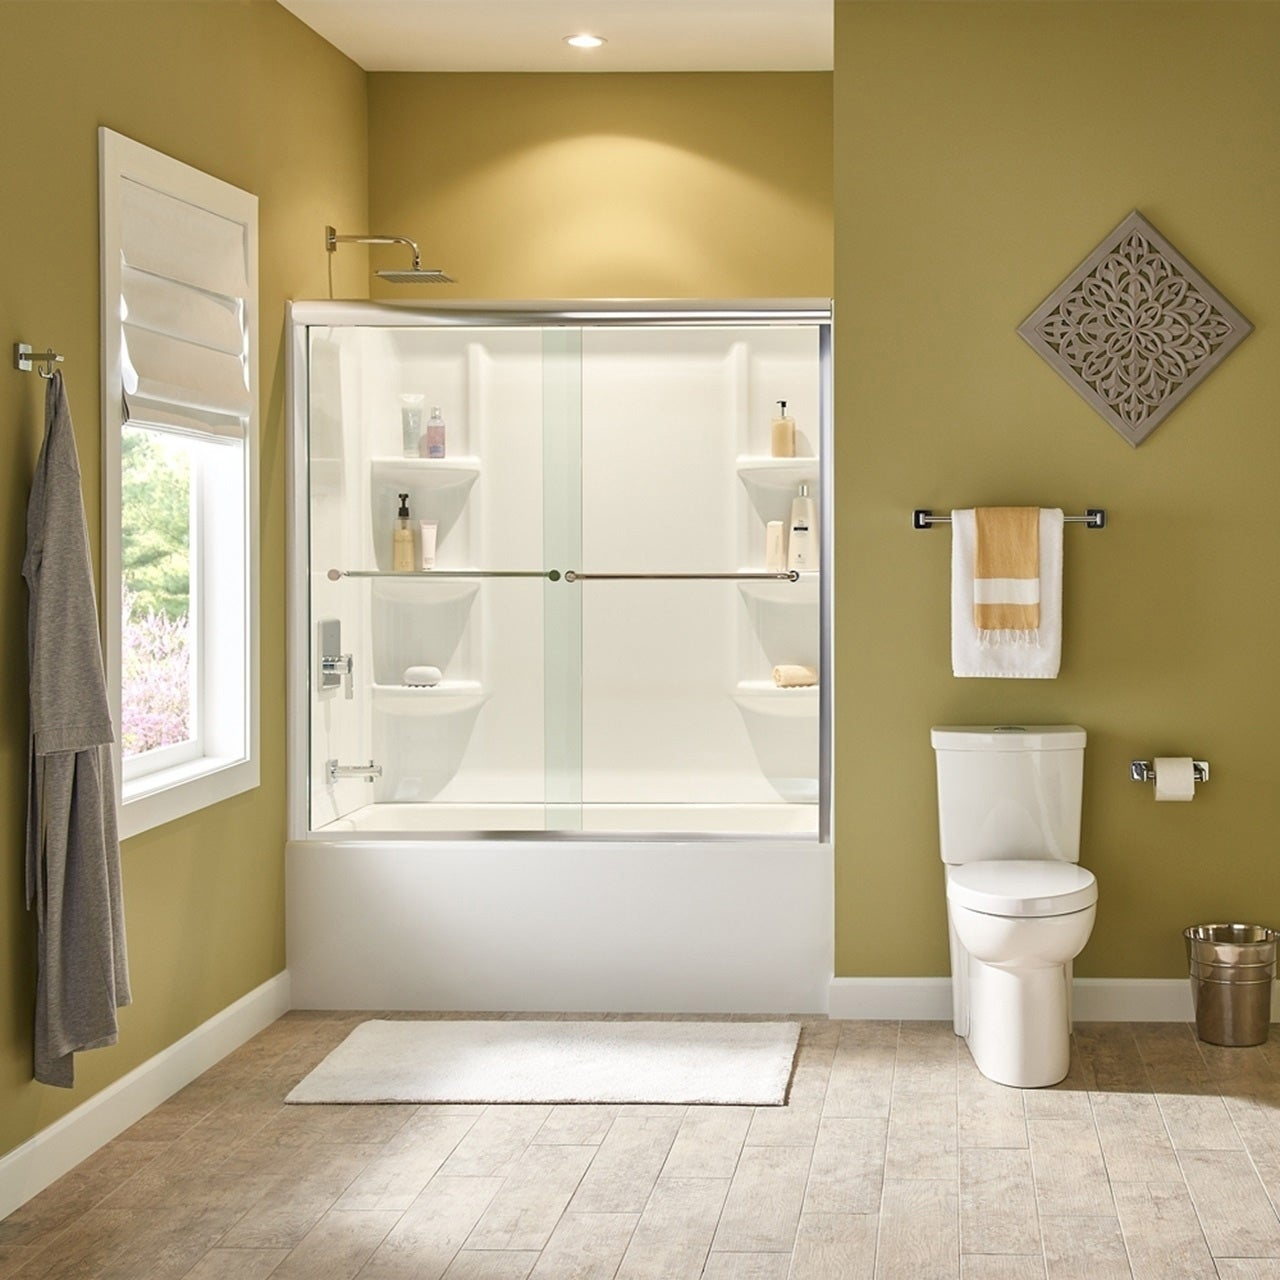 Ordinaire Shop American Standard Studio 60 Inch By 32 Inch Bathtub With Apron   Left  Drain 2946.202.011 Arctic   Free Shipping Today   Overstock   22897935